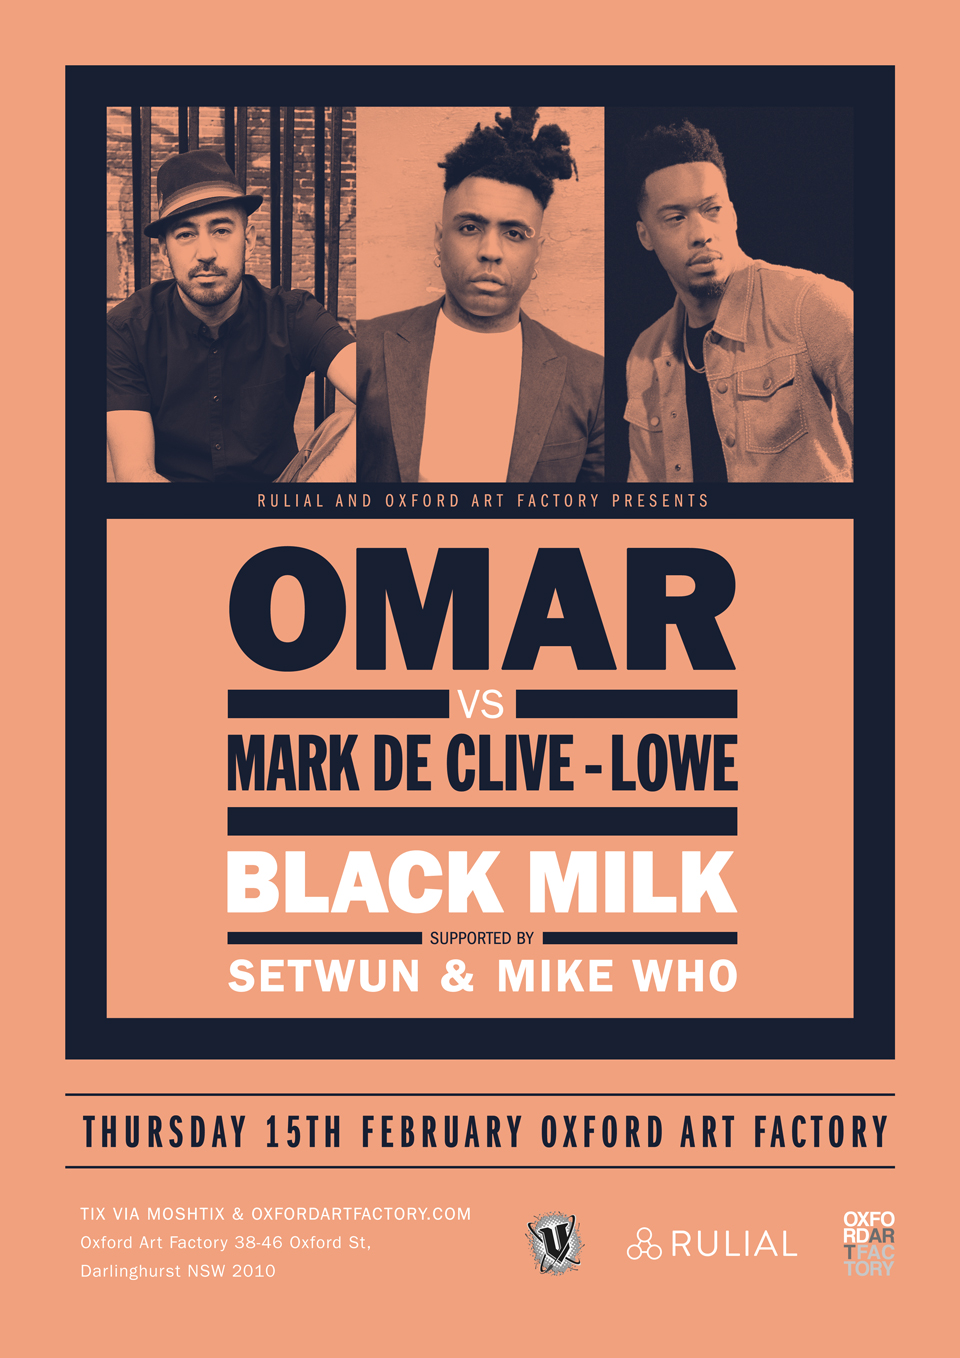 OMAR VS MARK DE CLIVE-LOWE & BLACK MILK SYDNEY SHOW